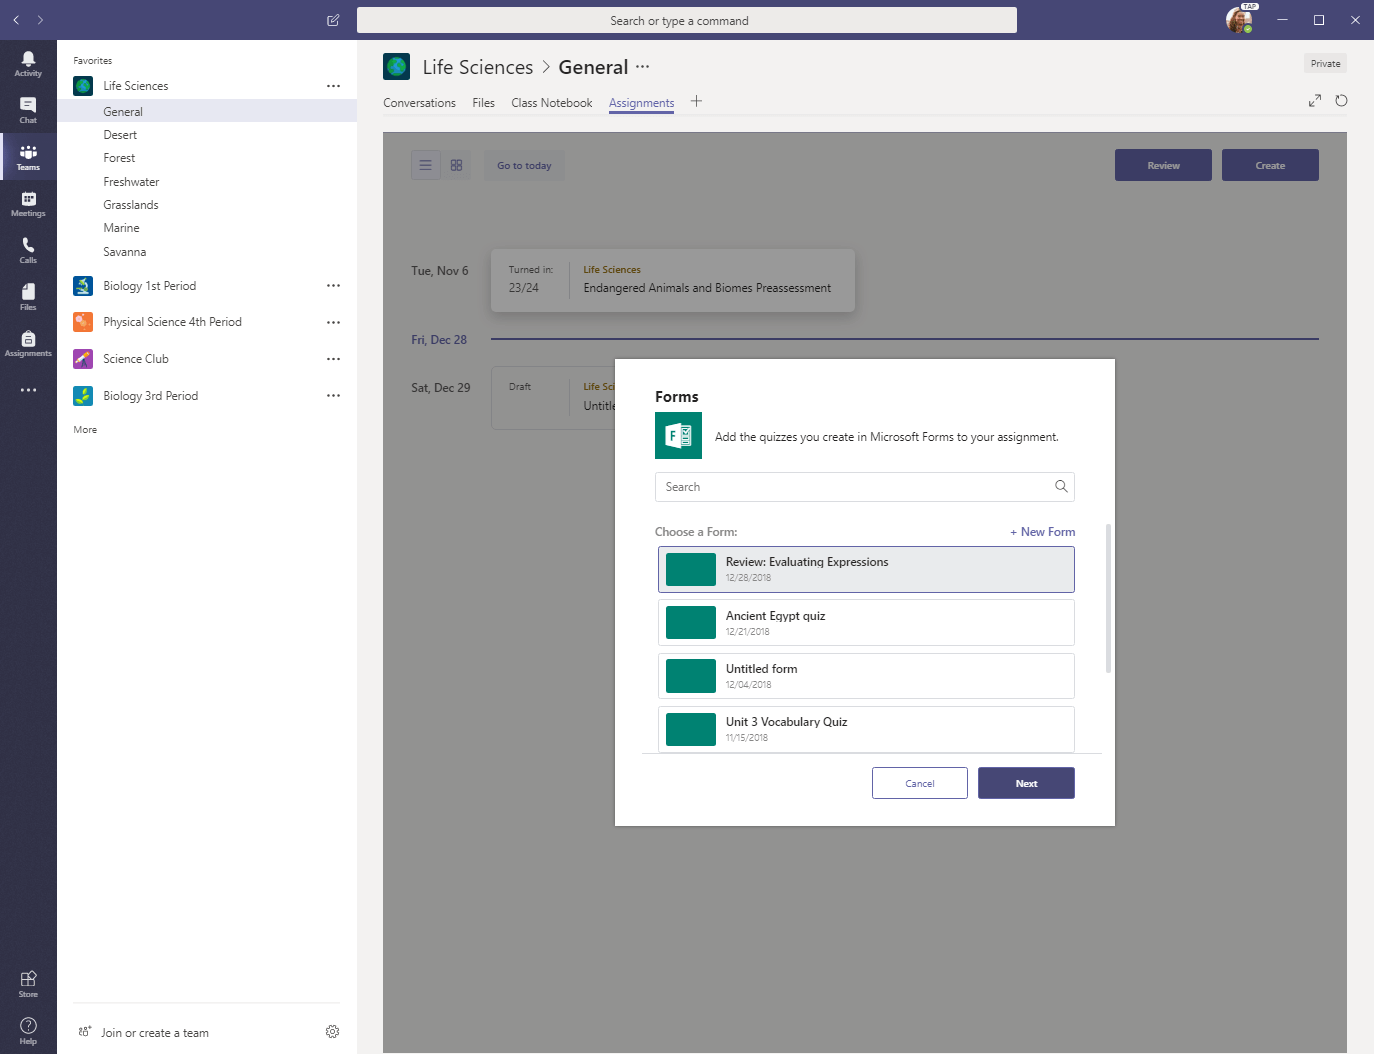 Choose a form to add to new quiz in Microsoft Teams